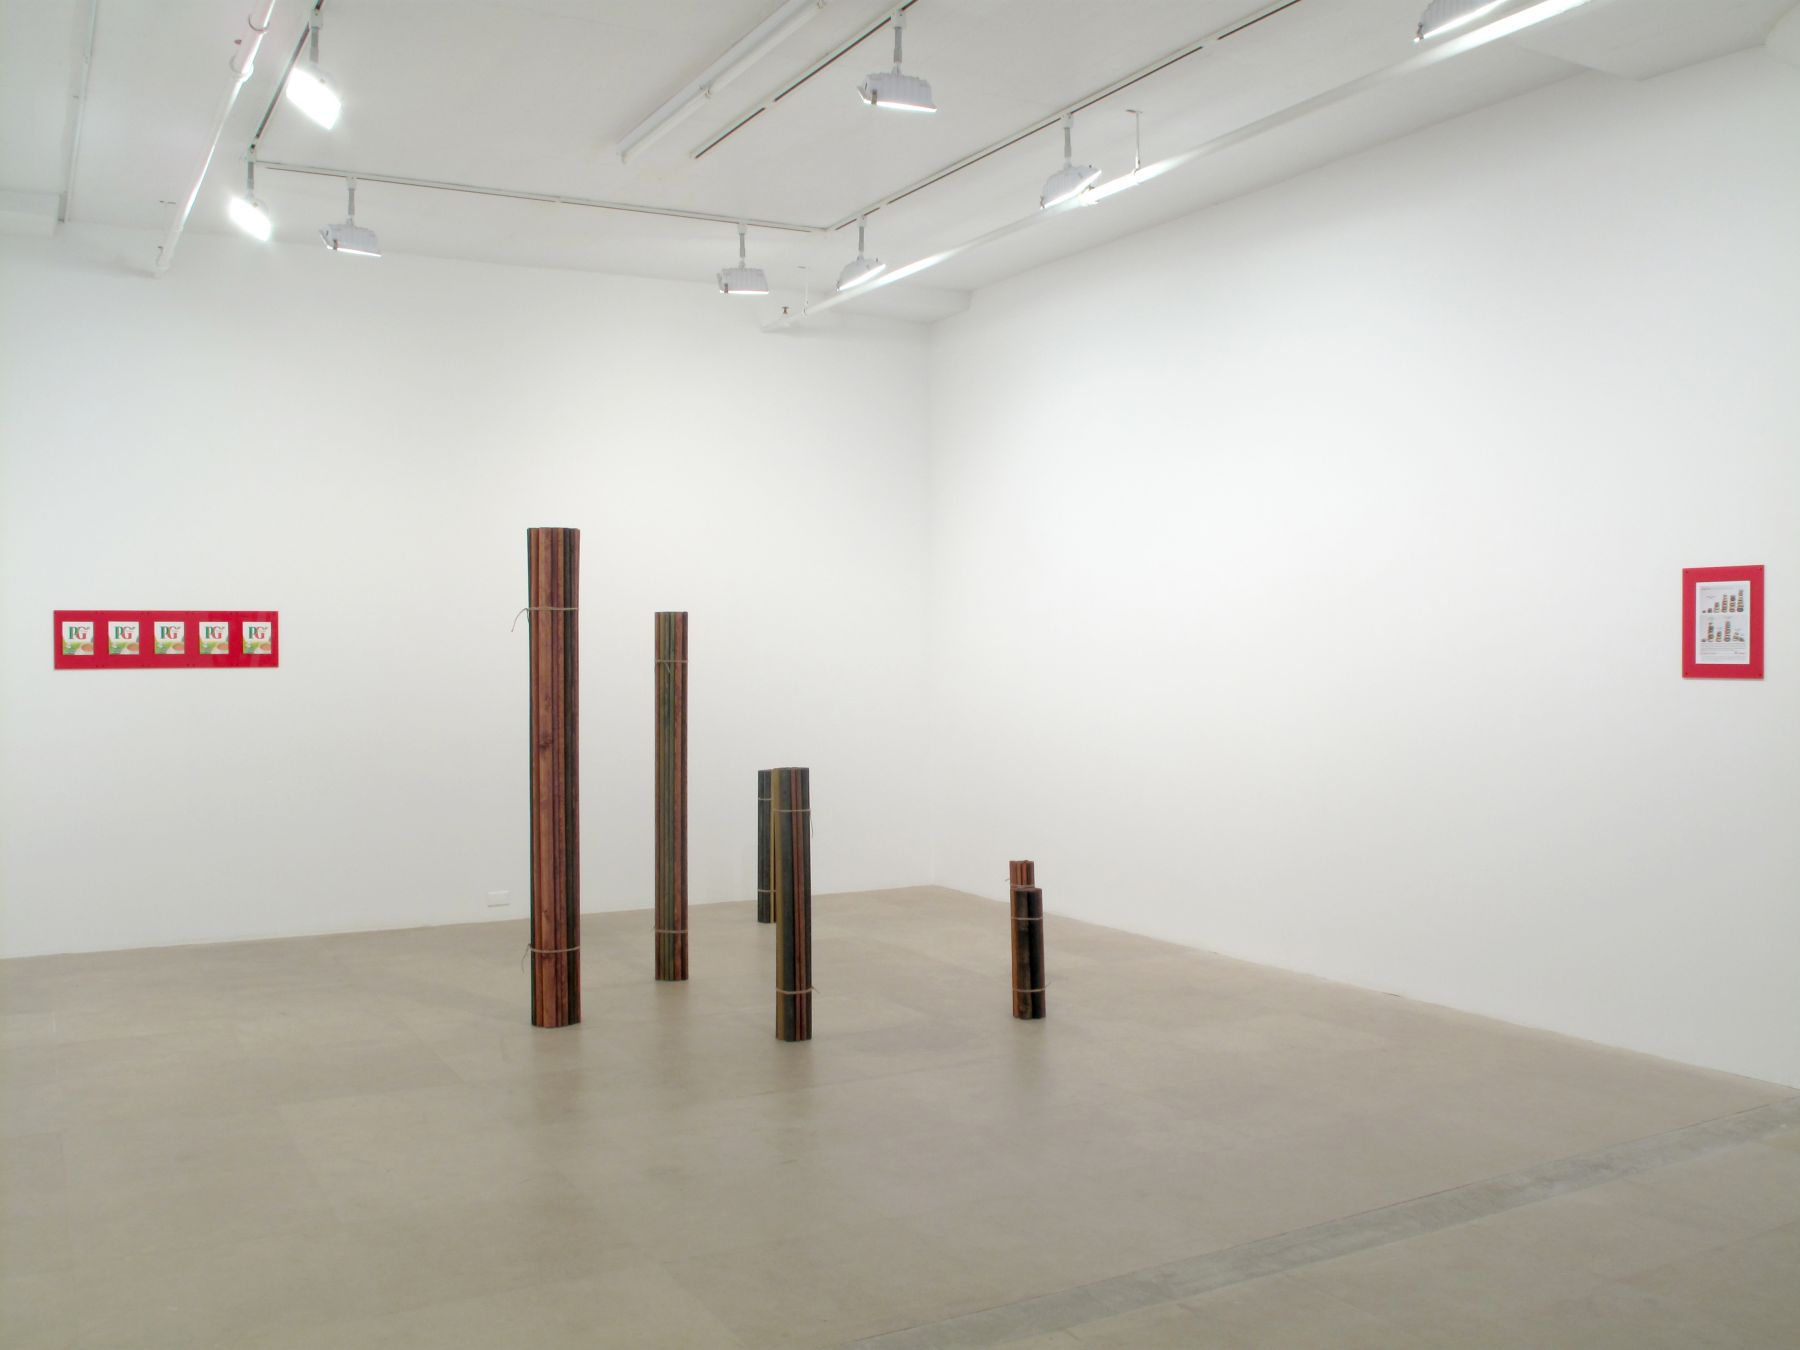 Michaela Meise, Installation view, Constitution, Greene Naftali, New York, 2009